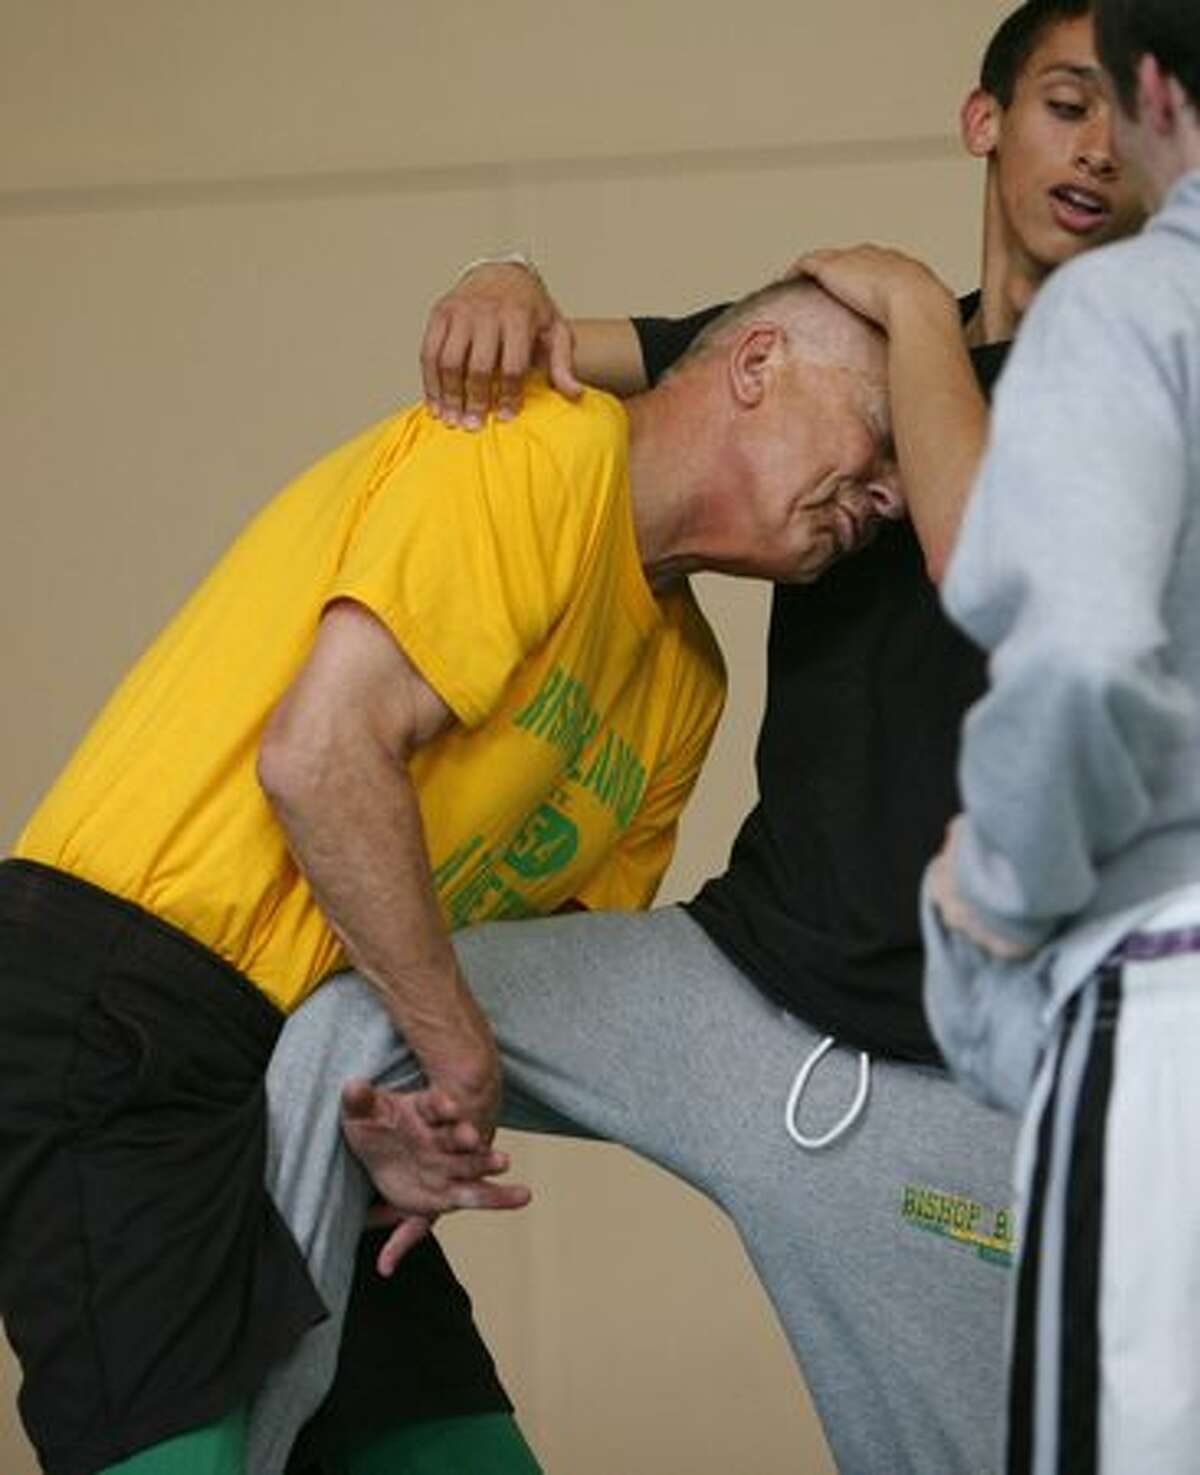 Bishop Blanchet coach Bill Herber, 74, takes a student to the mat during a wrestling clinic at the school in north Seattle. Herber has been a coach, teacher and friend to generations of students that have attended Blanchett. He retired this year after 50 years teaching at the Catholic school.